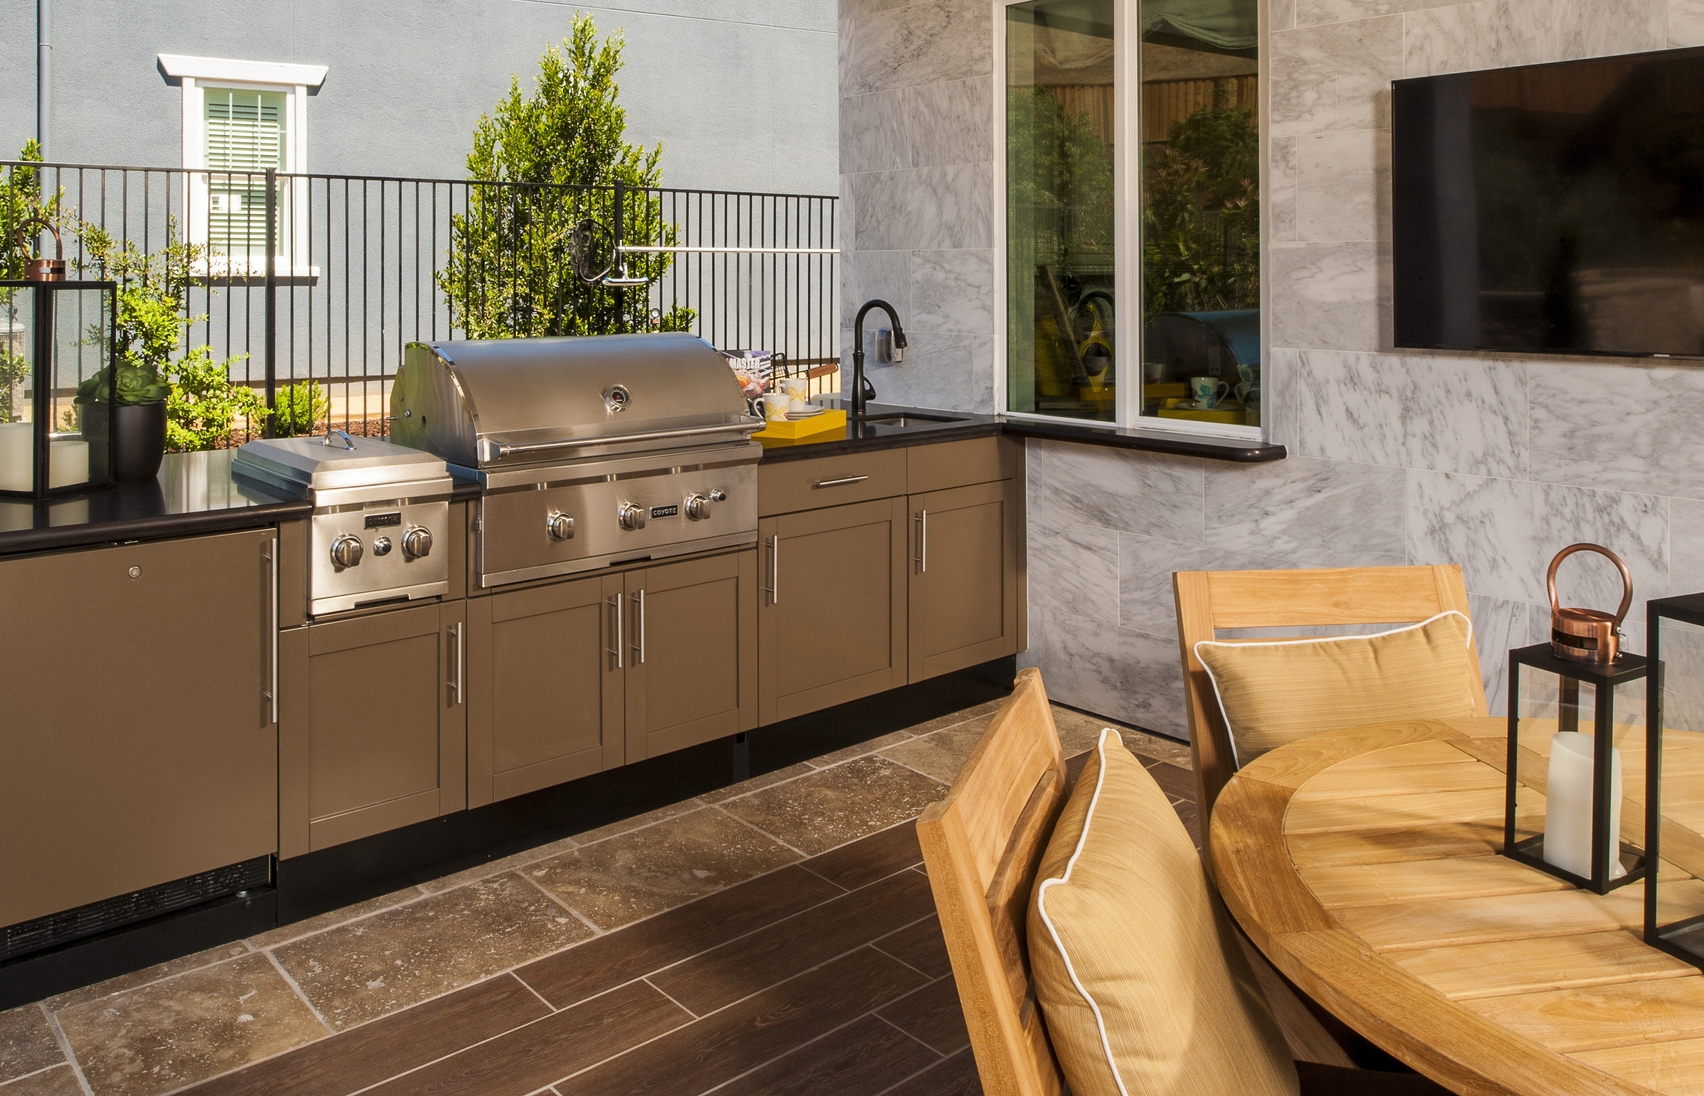 Danver-CA-1812_SS-Base-Cabinets-for-Outdoor-Kitchen